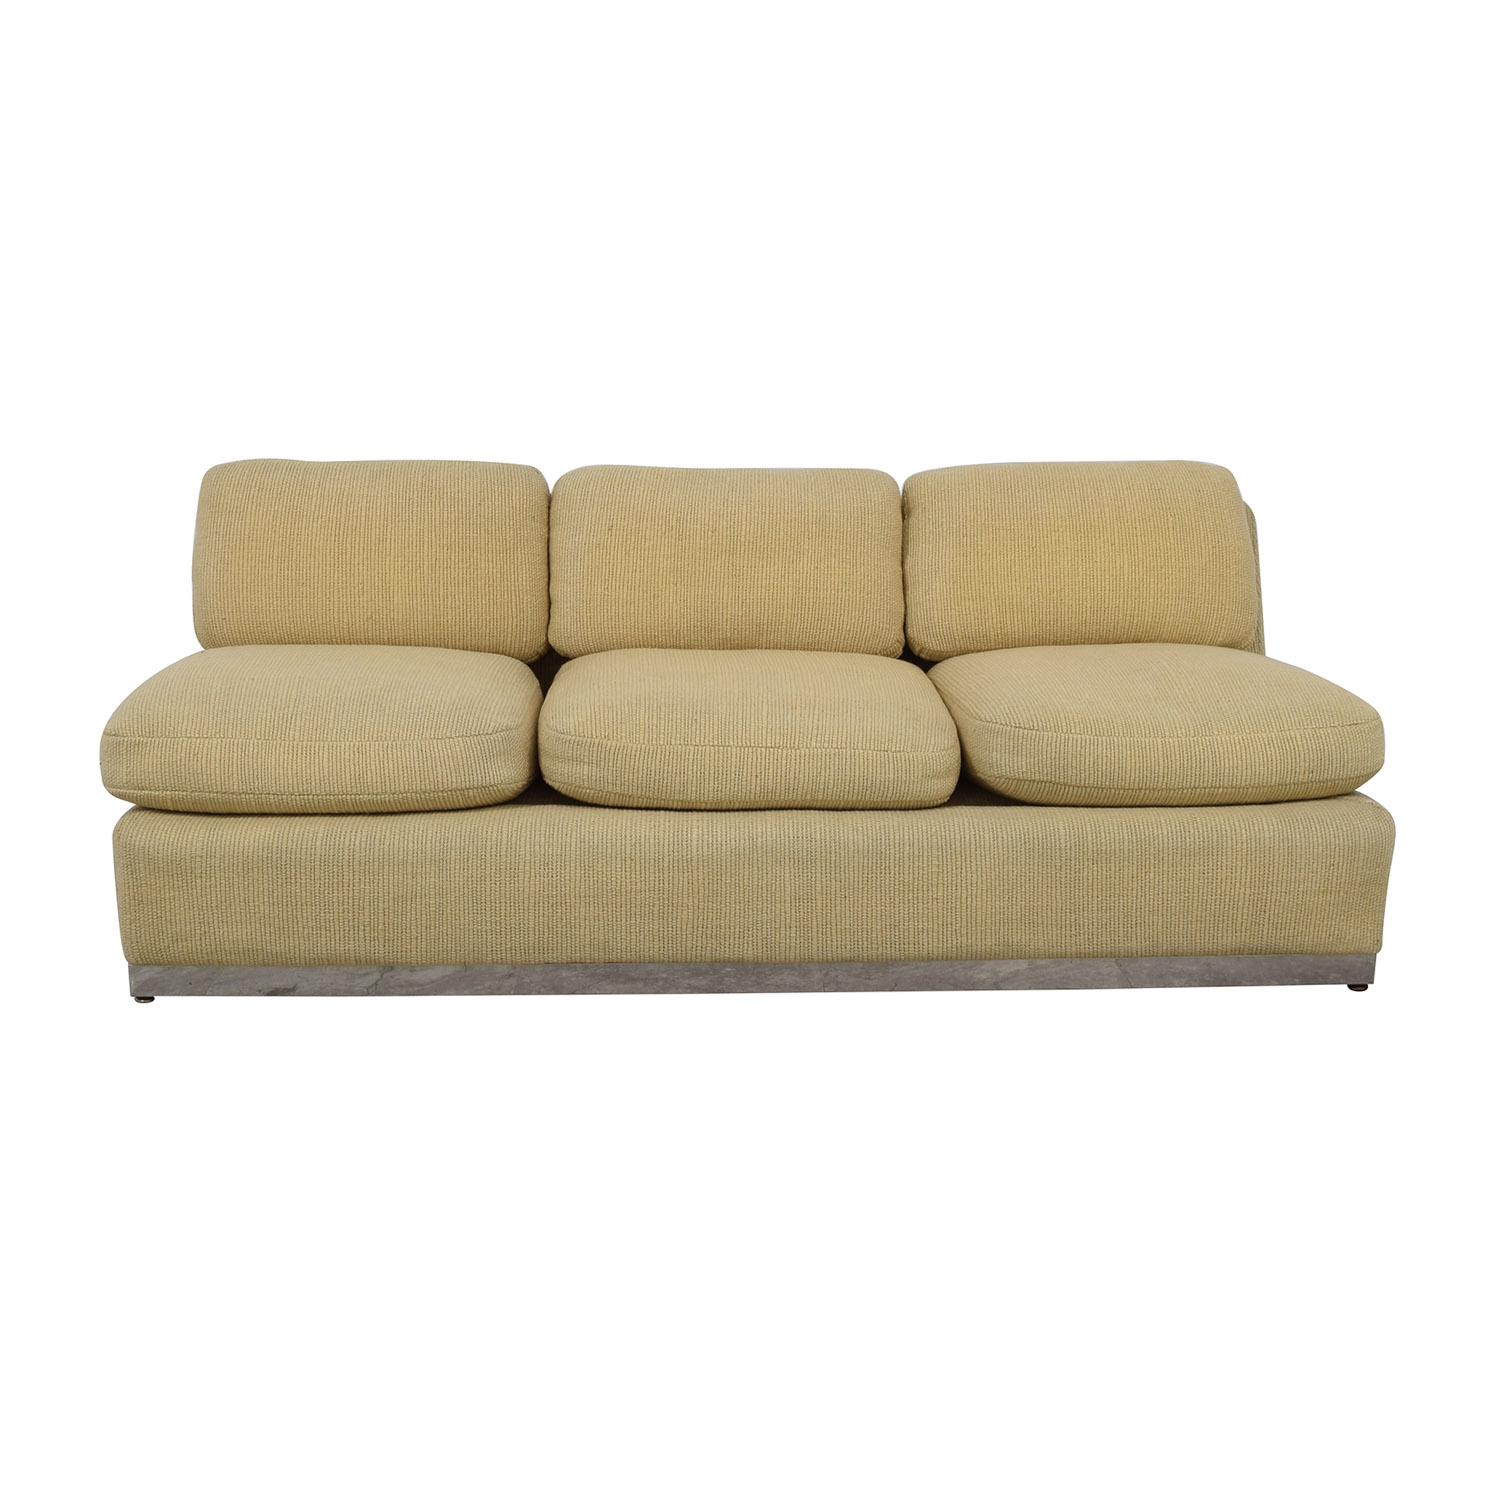 Off White Armless Three Cushion Couch nj